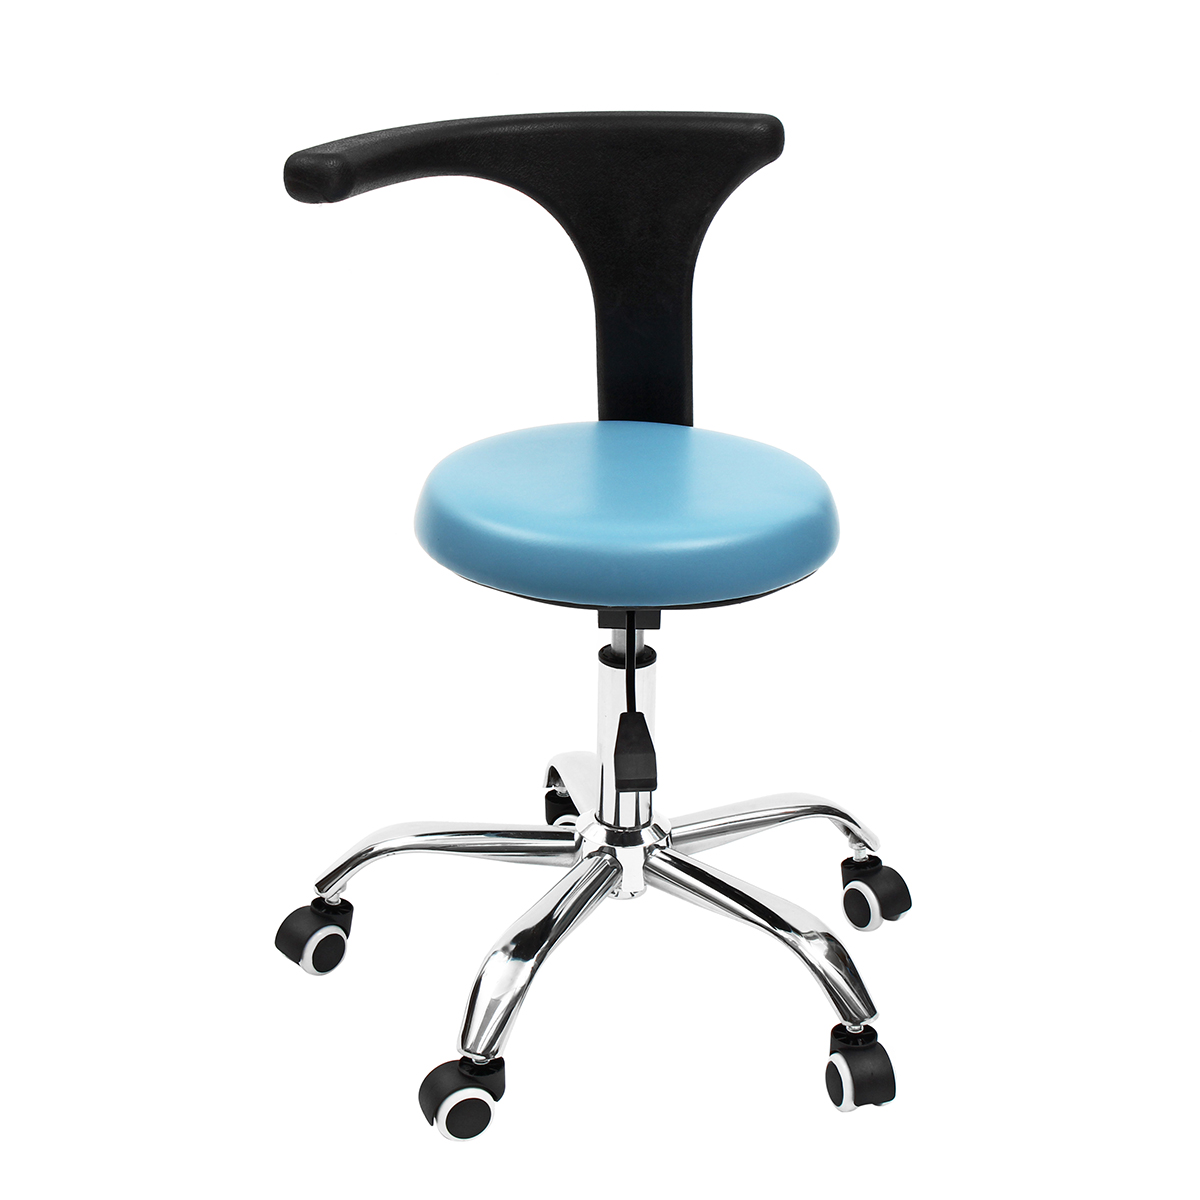 Lfy Moderne Designe Barber Swivel Leder Executive Computer Büro Dekoration Gaming Salon Stuhl Schönheit Synthetische Metall Möbel